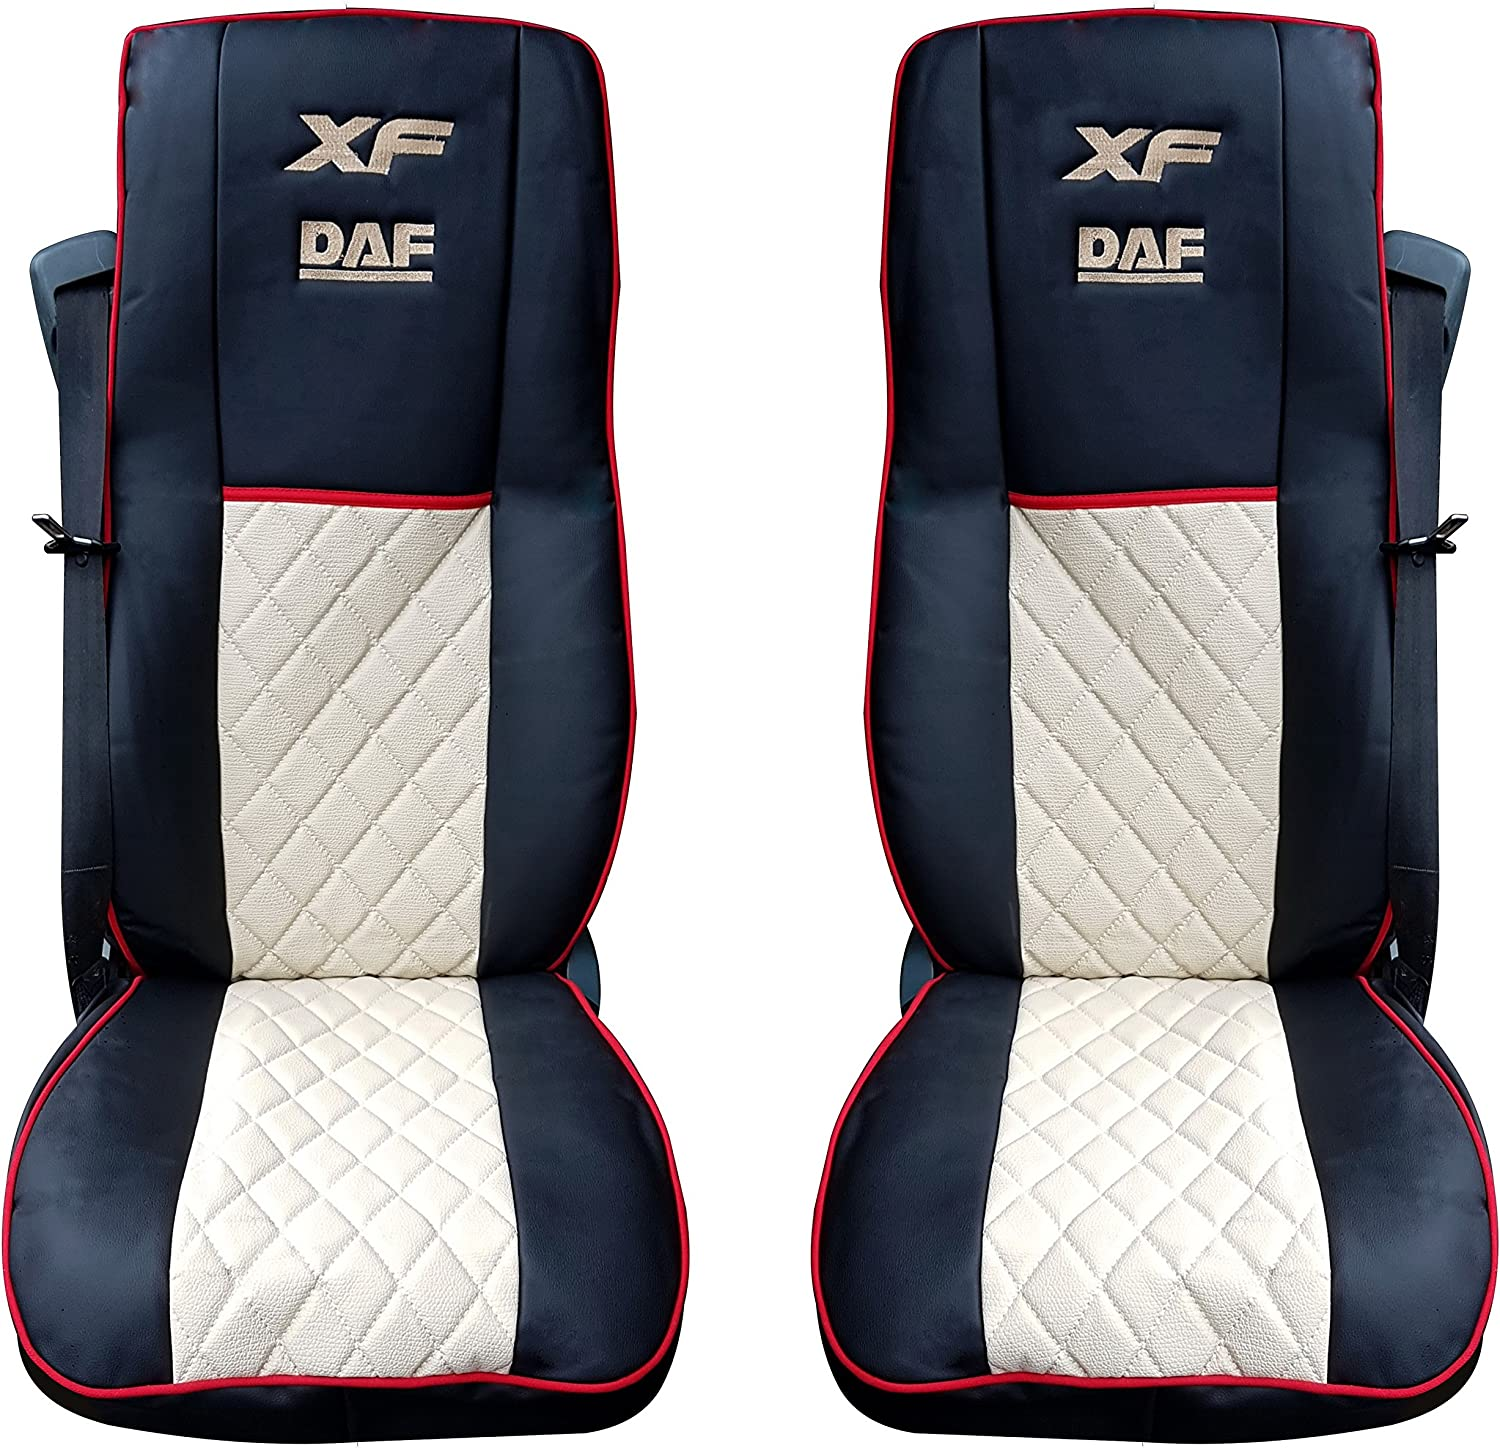 Set of 2 Pcs High Quality Truck Seat Covers Protectors Cabin Trucker Accessories Decoration BLACK BEIGE Colour 100/% Eco Leather